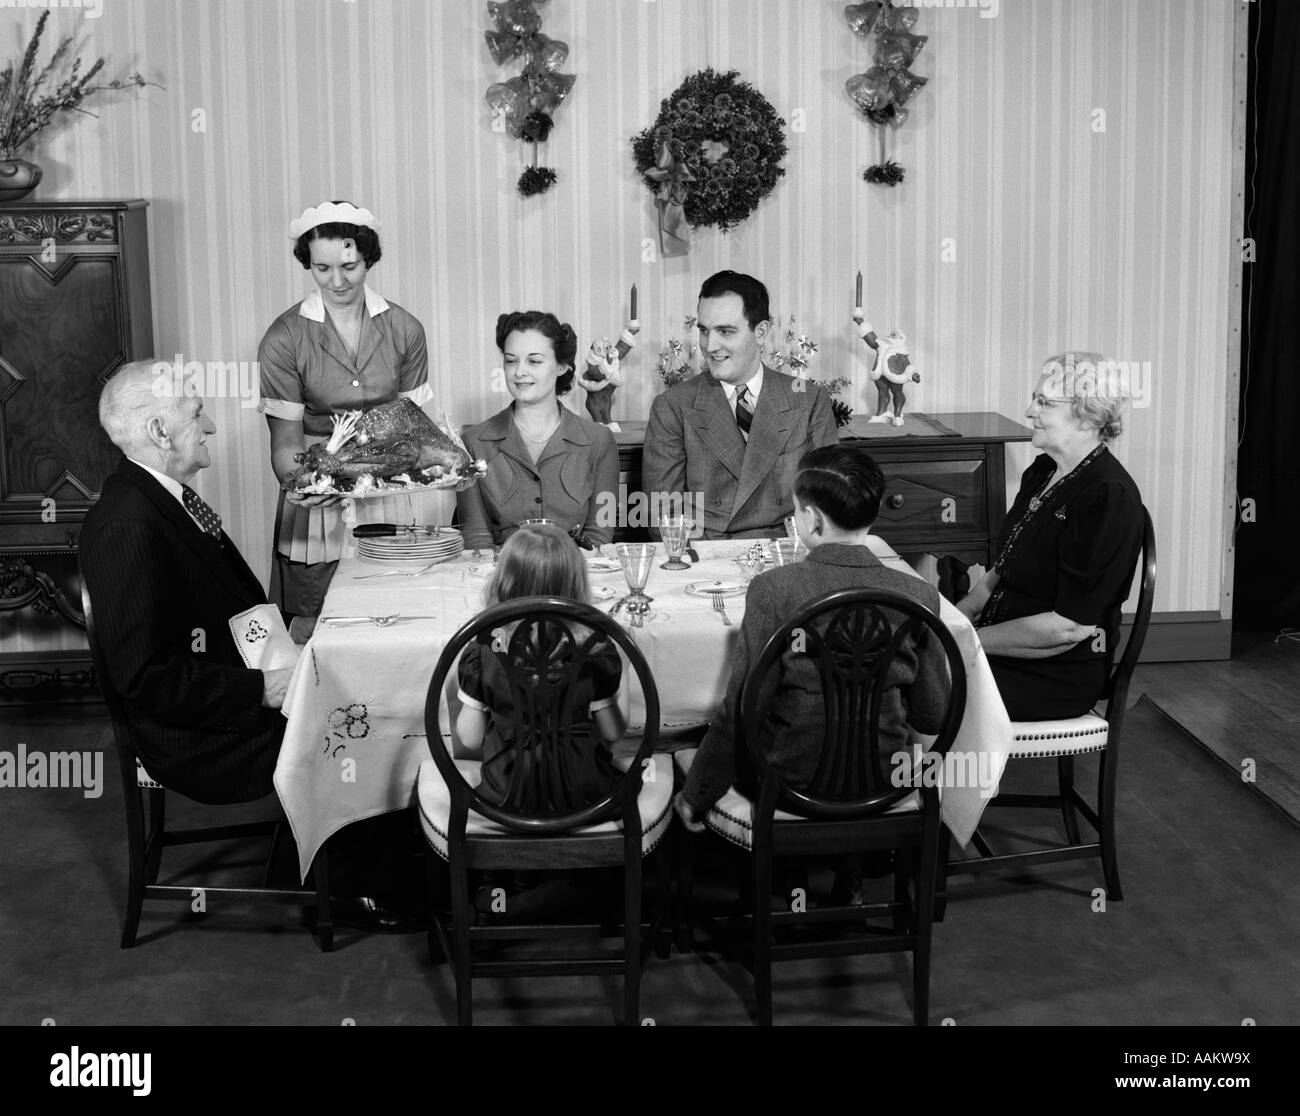 1940s THREE GENERATION FAMILY IN DINING ROOM BEING SERVED CHRISTMAS TURKEY BY MAID